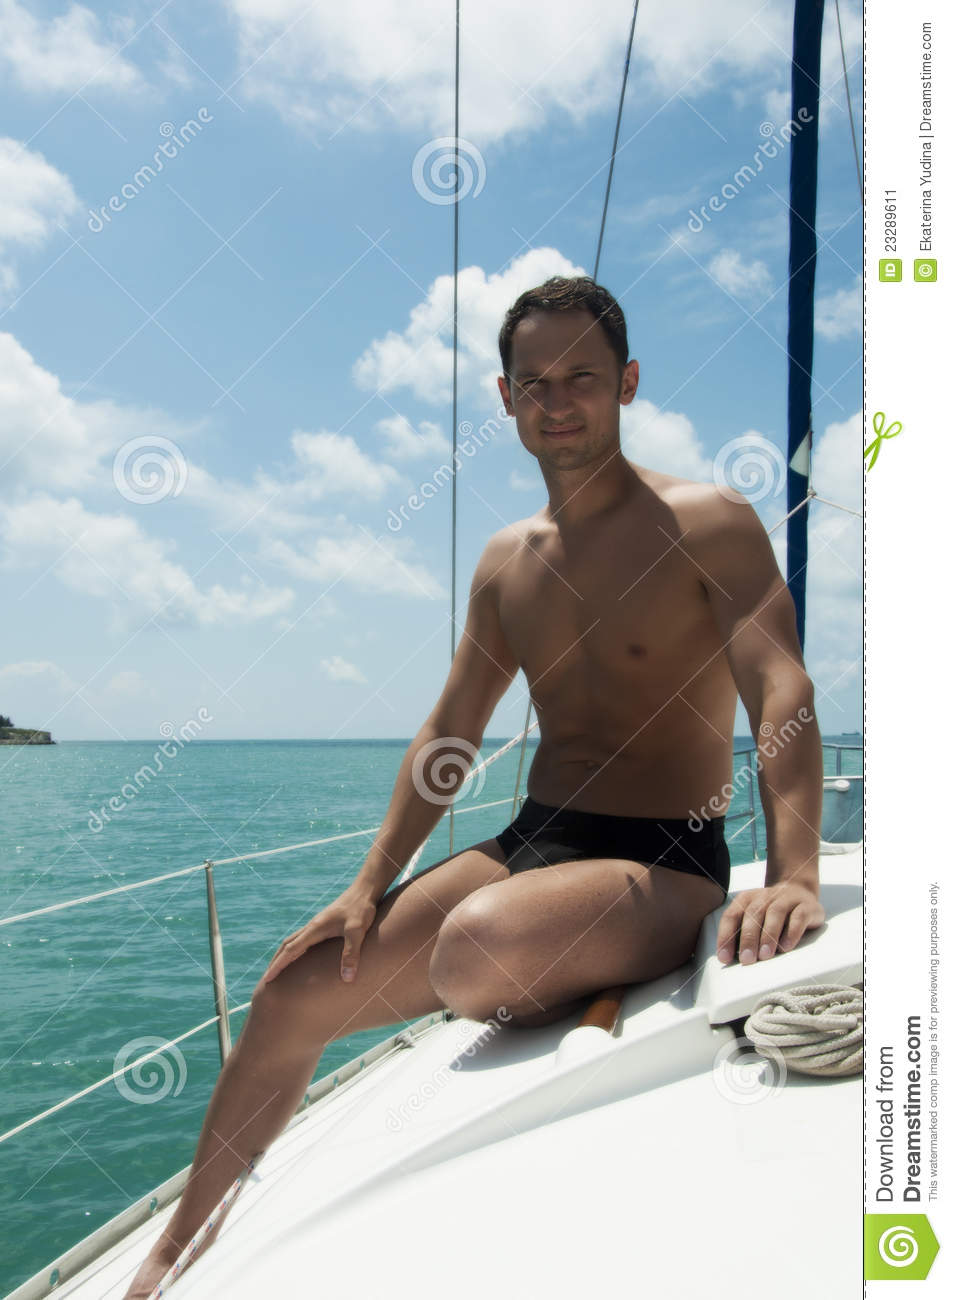 Handsome Young Adult Man Sailing On Yacht Stock Image ...